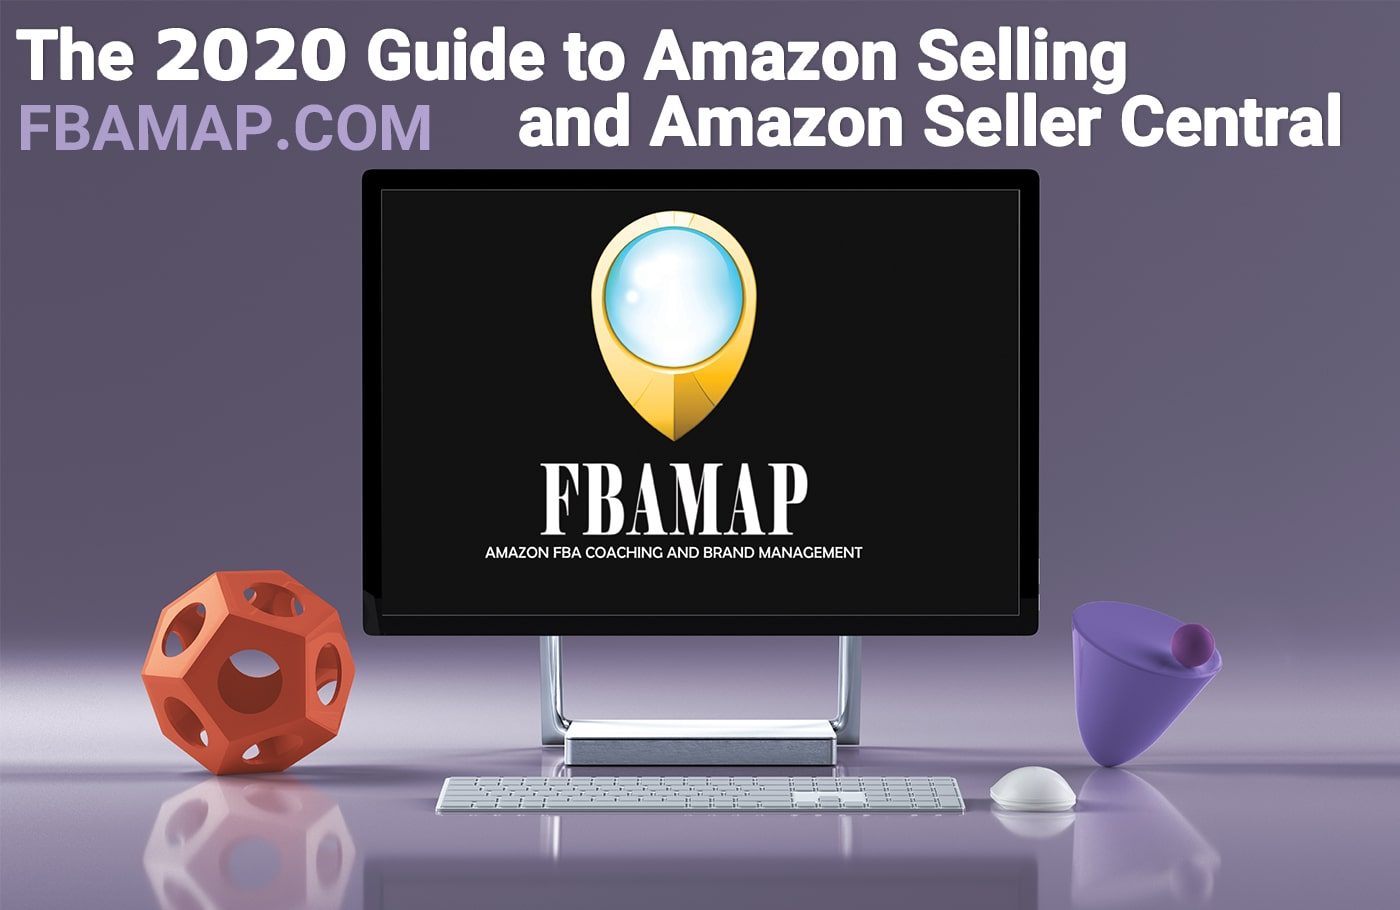 The 2020 guide to Amazon selling and Amazon Seller Central